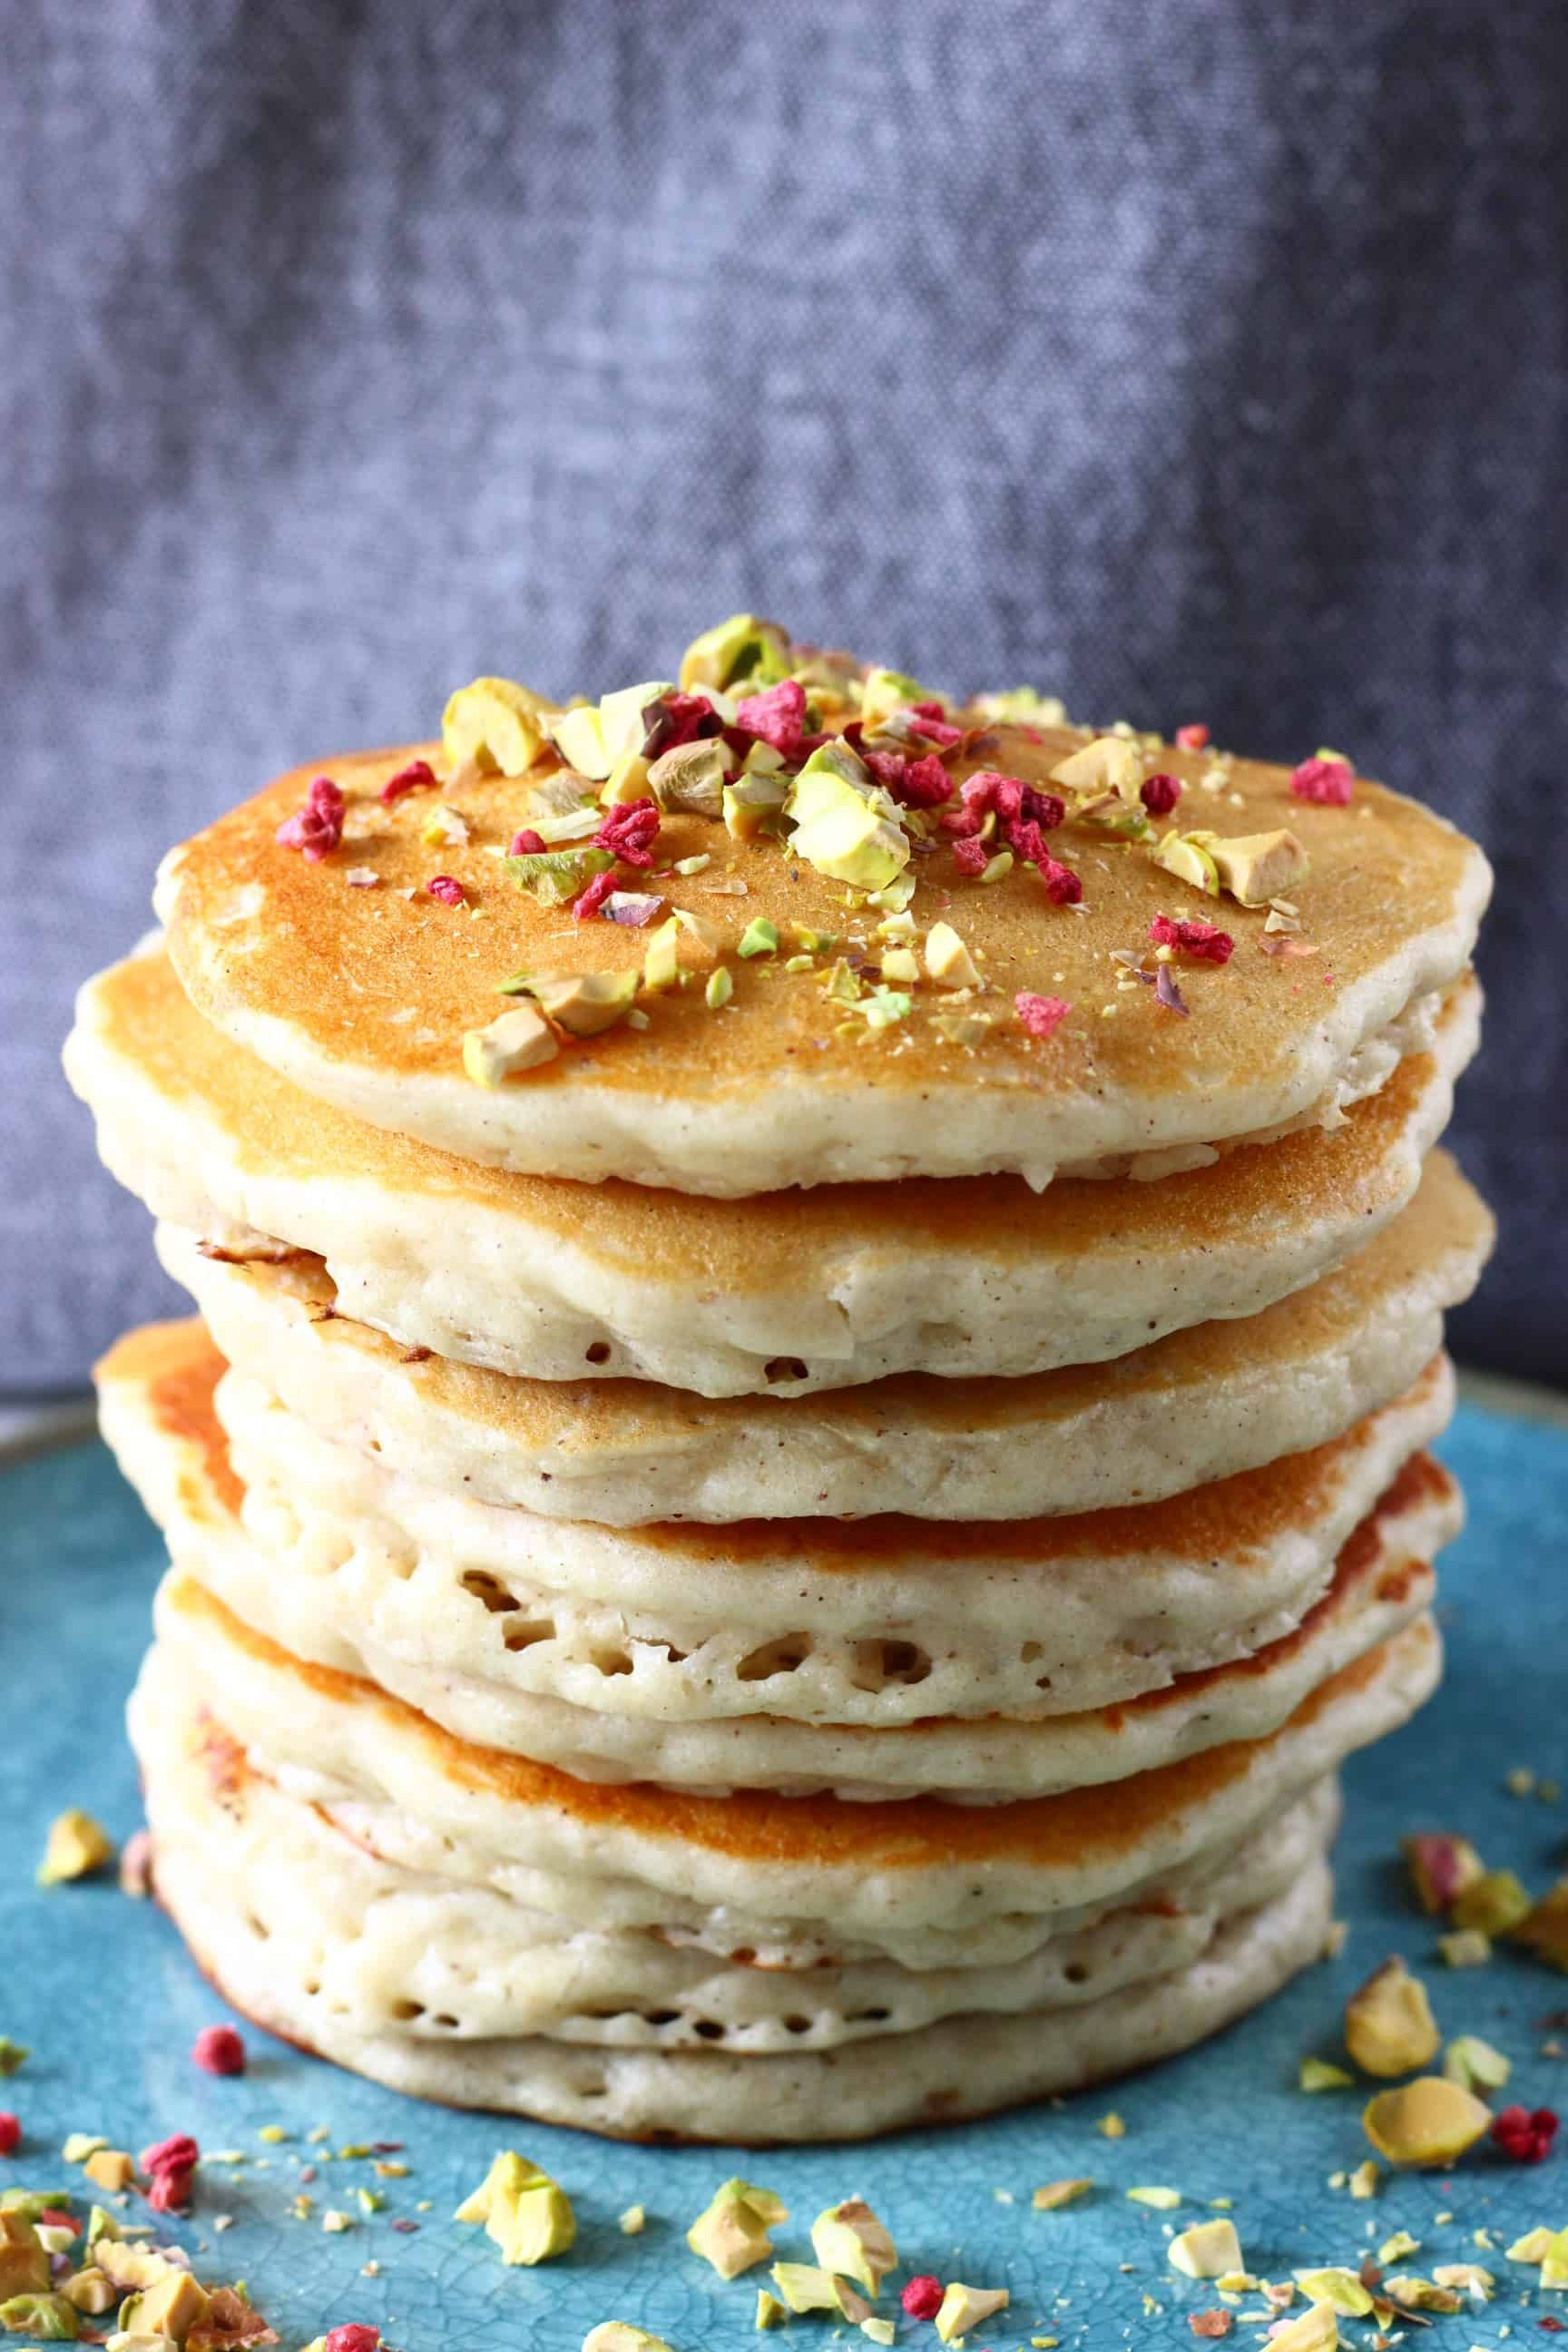 A stack of gluten-free vegan oatmeal pancakes on a plate sprinkled with chopped pistachios and freeze-dried raspberries